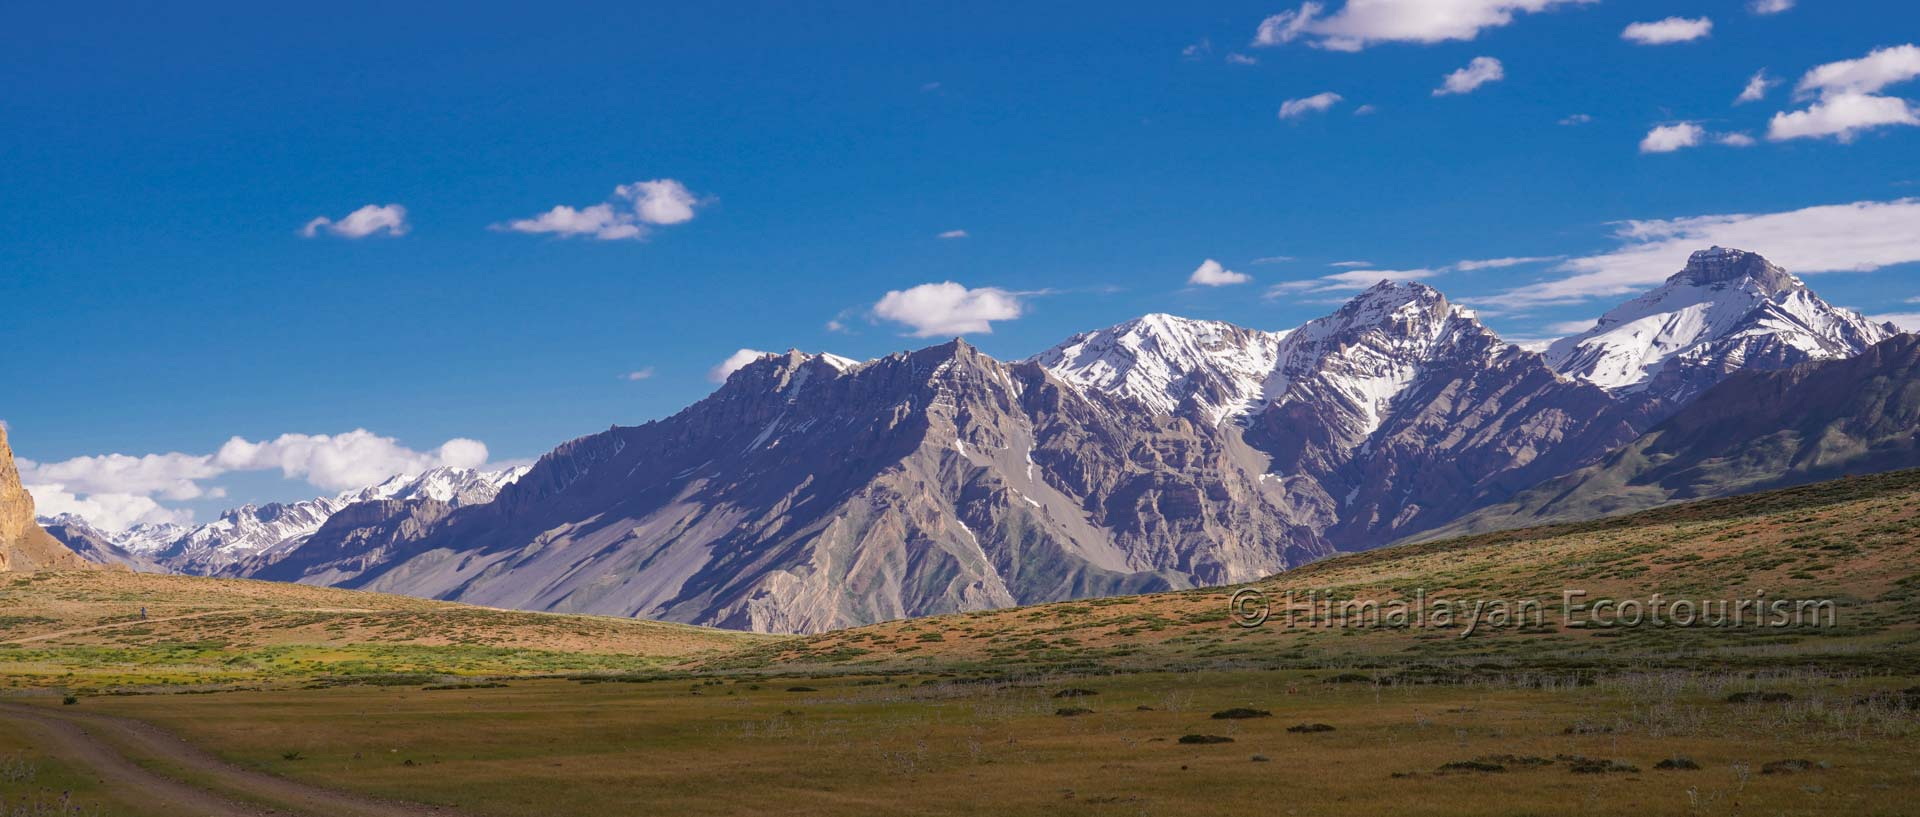 Photo of the Spiti valley